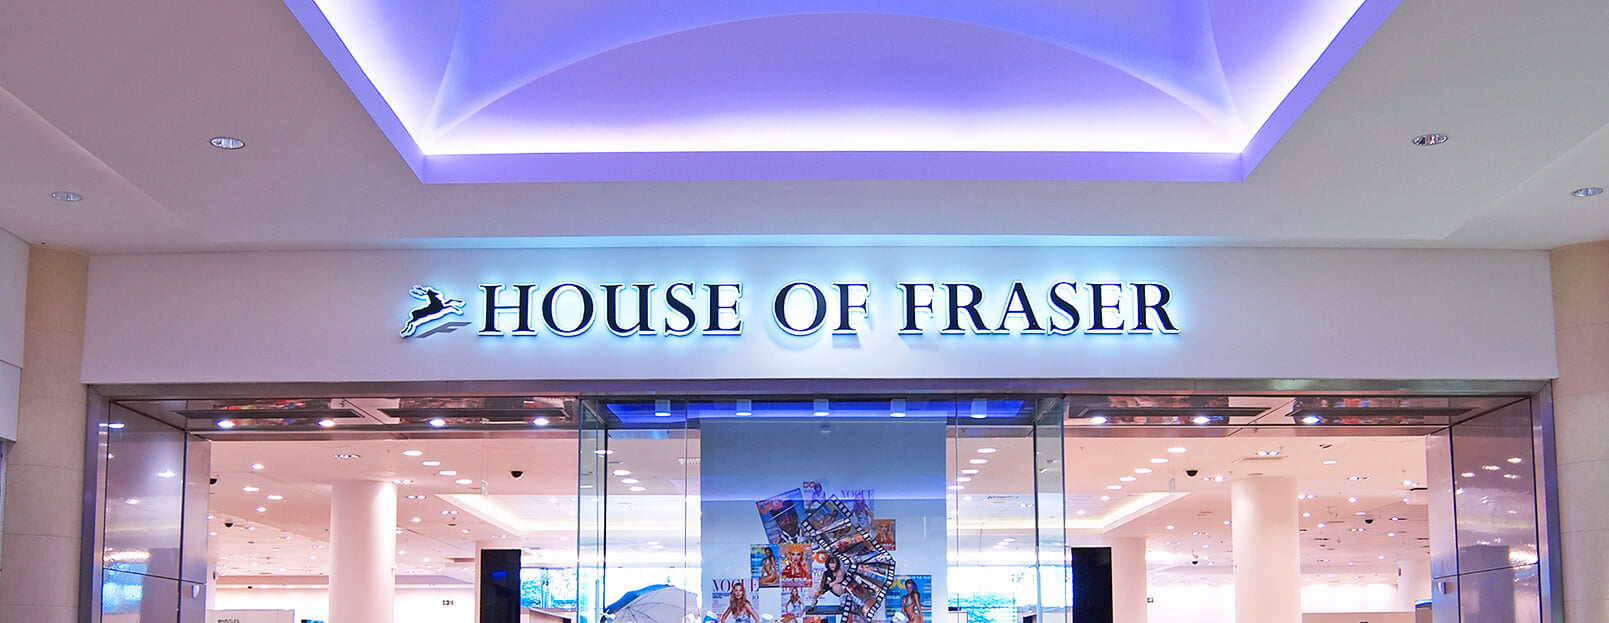 House of Fraser Retail Photography